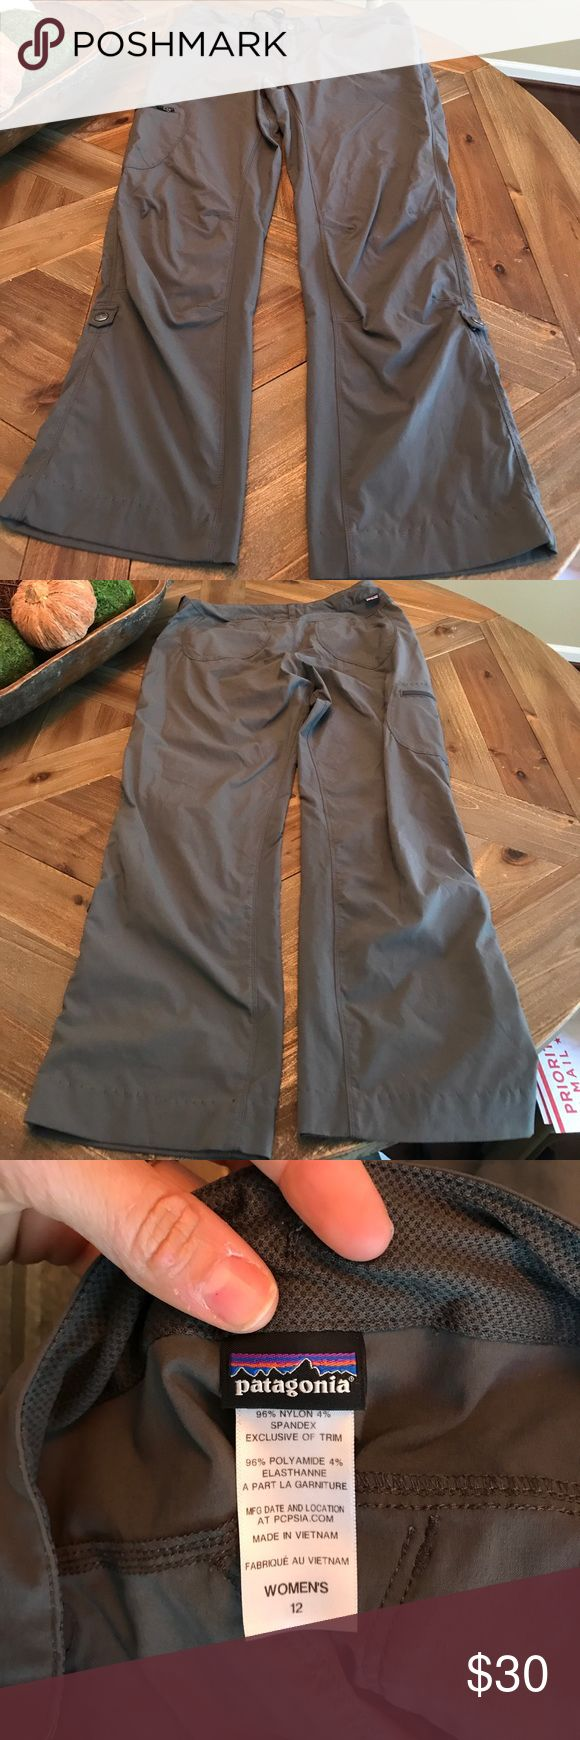 Patagonia hiking pants! Excellent used condition Patagonia hiking pants. Great roll up option. Appear to have been hemmed so included inseam measurement. Patagonia Pants Track Pants & Joggers